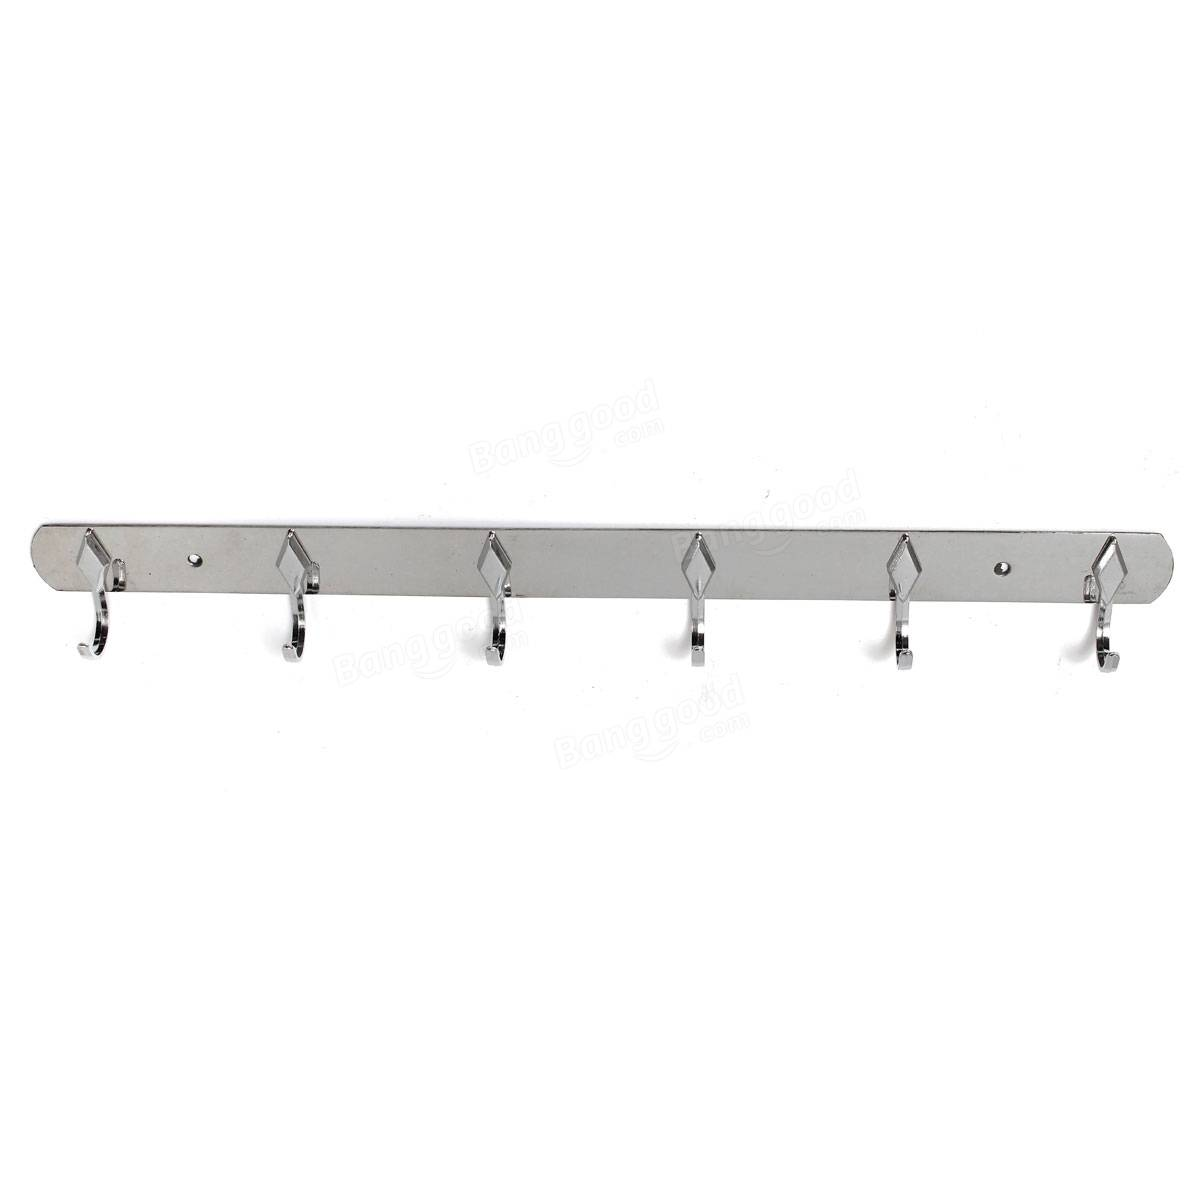 3/4/5/6/8 Hooks Stainless Steel Hanger Hook Wall Door